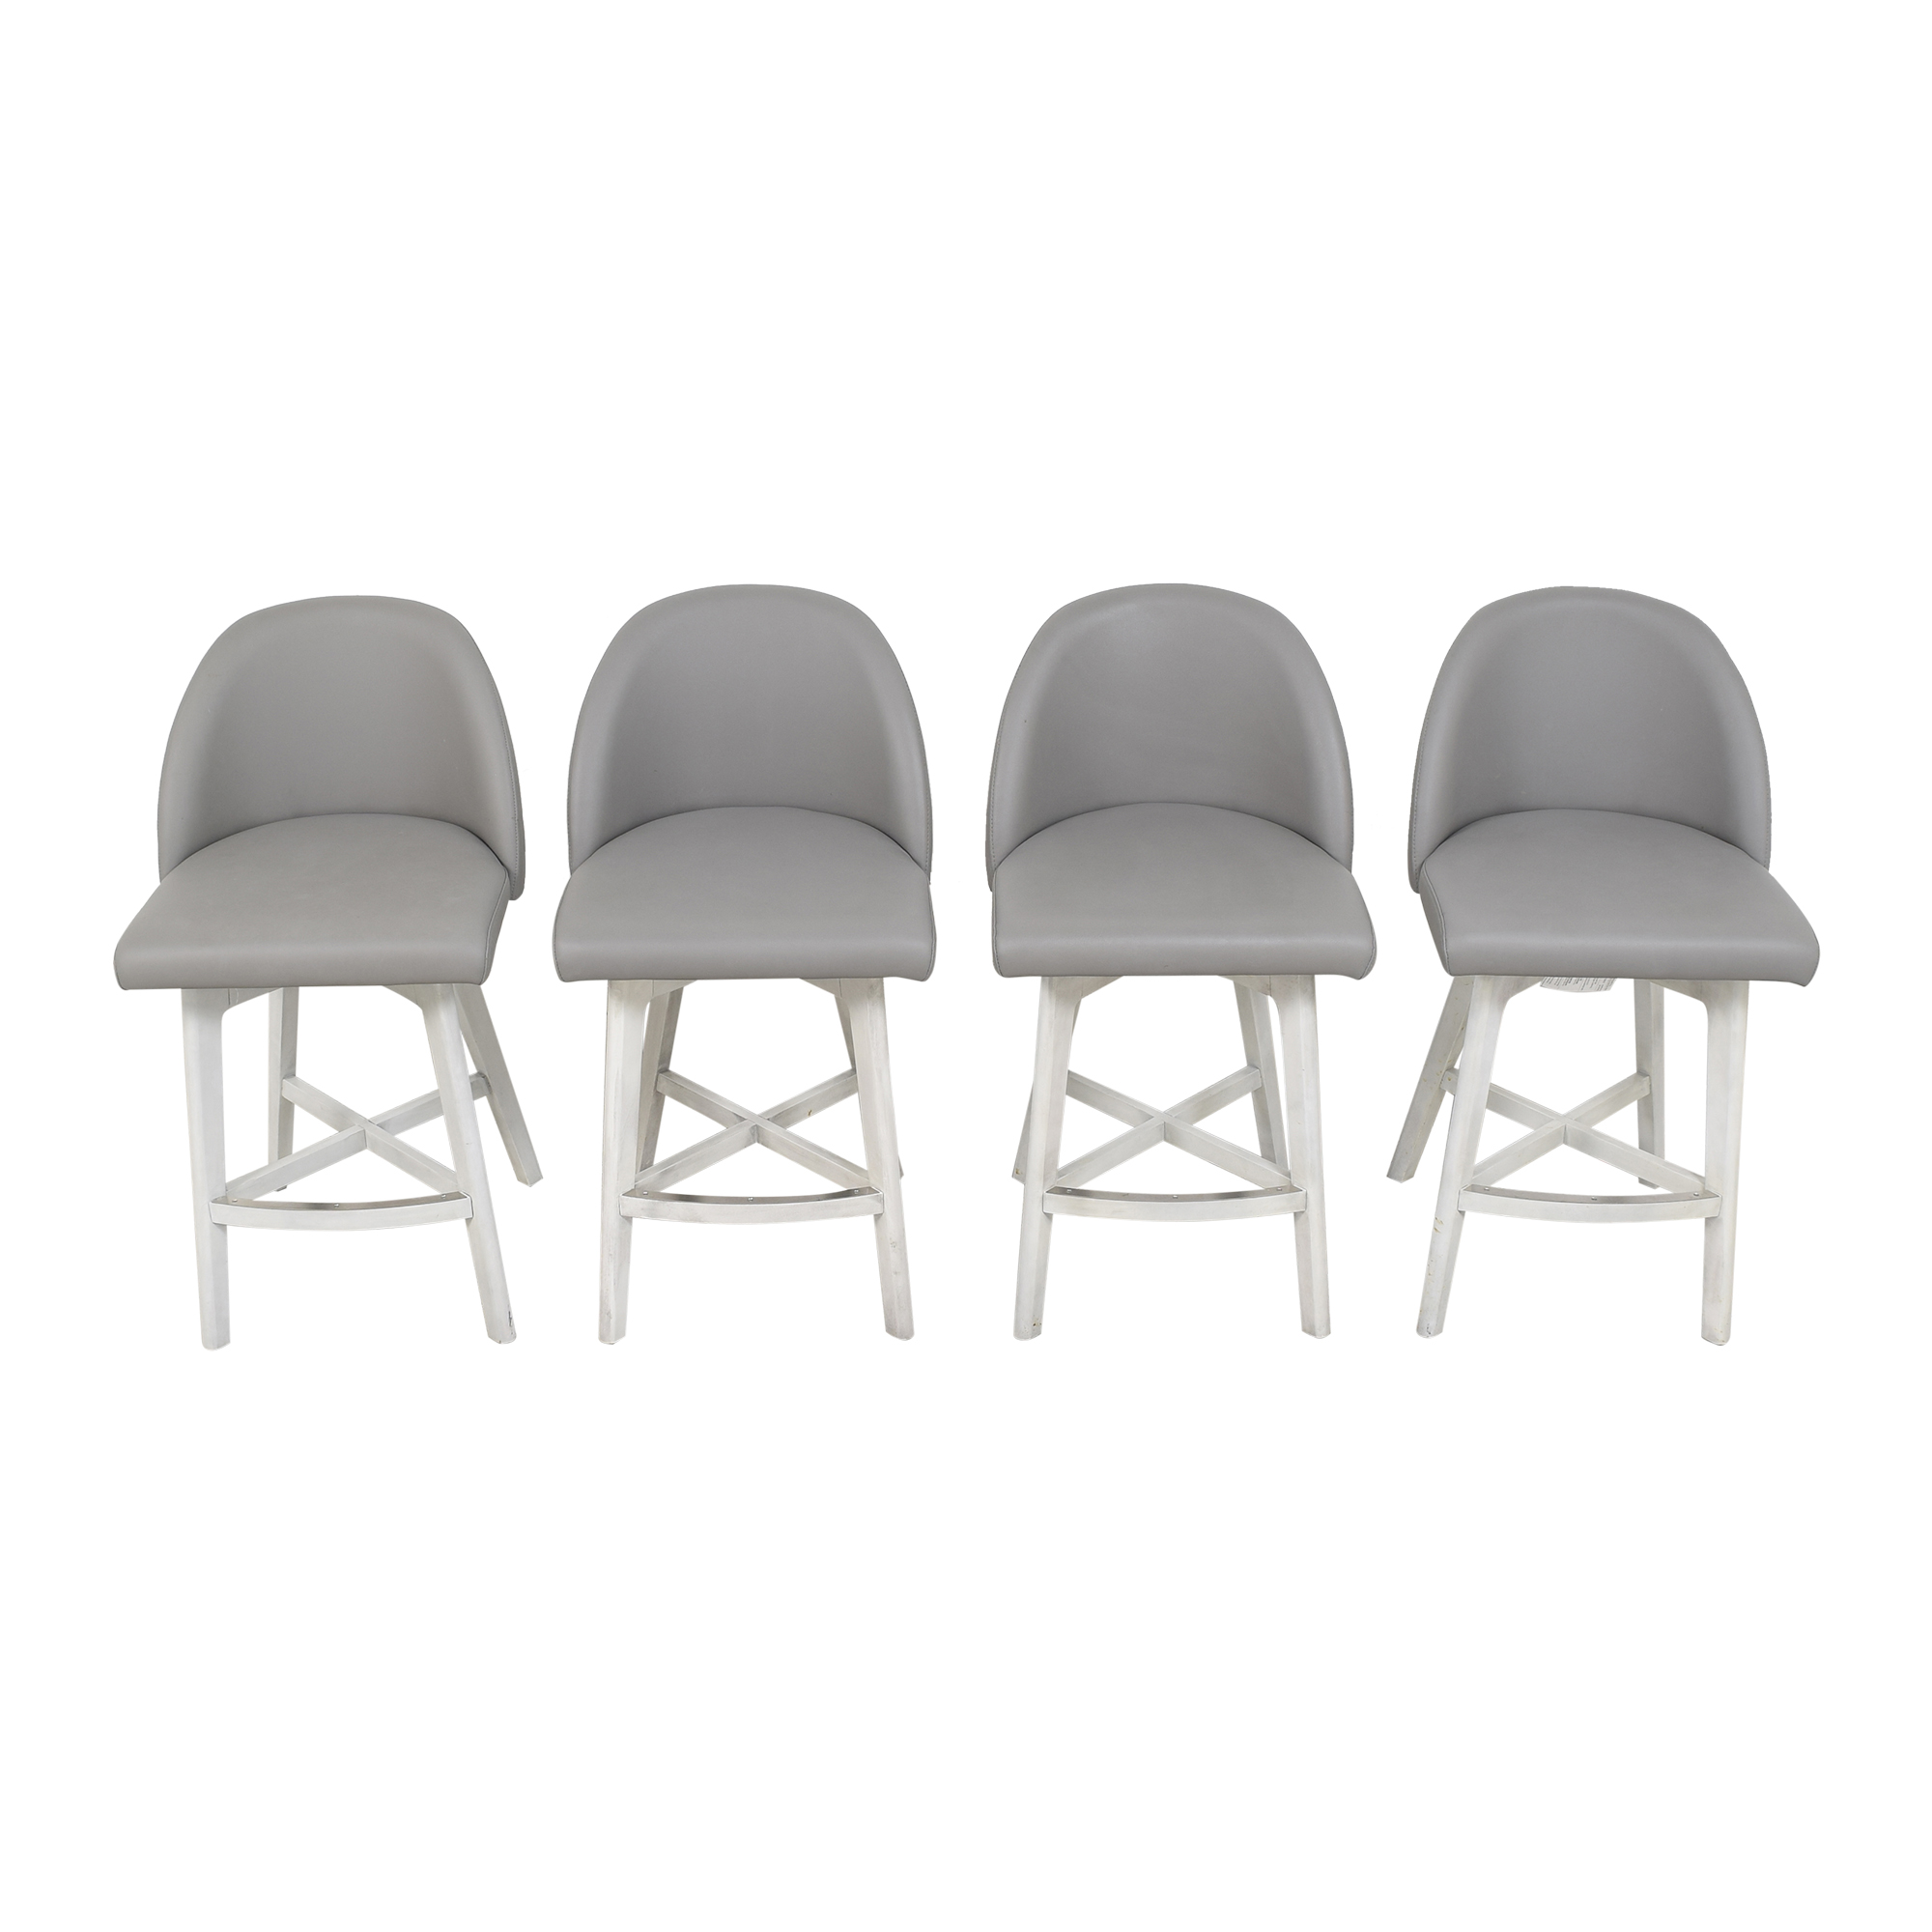 Canadel Canadel Downtown Counter Stools light gray and white